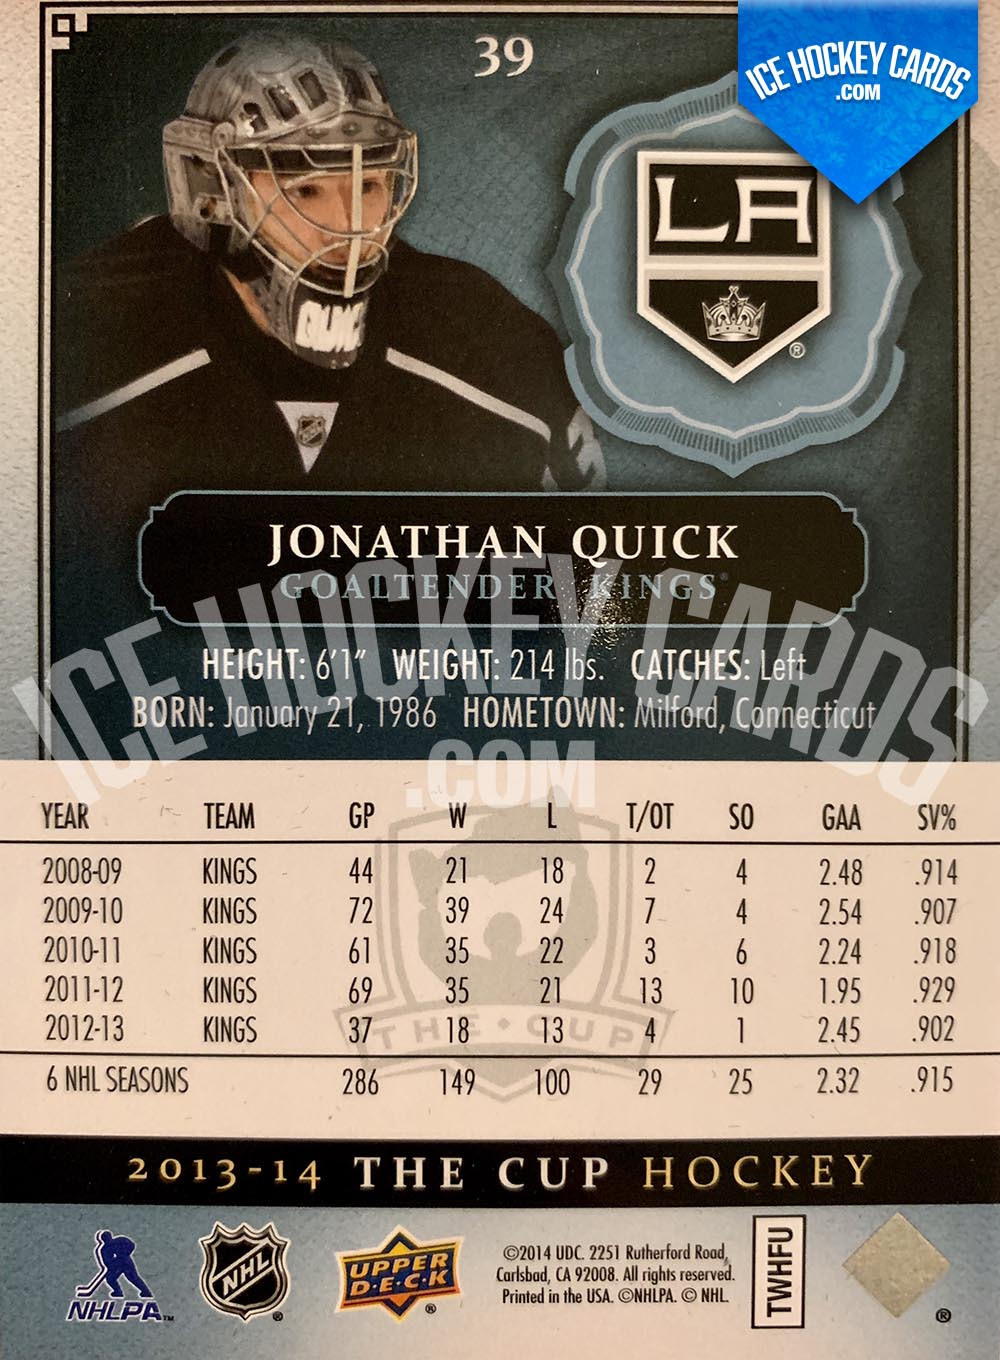 Upper Deck - The Cup 2013-14 - Jonathan Quick Gold Base Card # to 25 RARE back